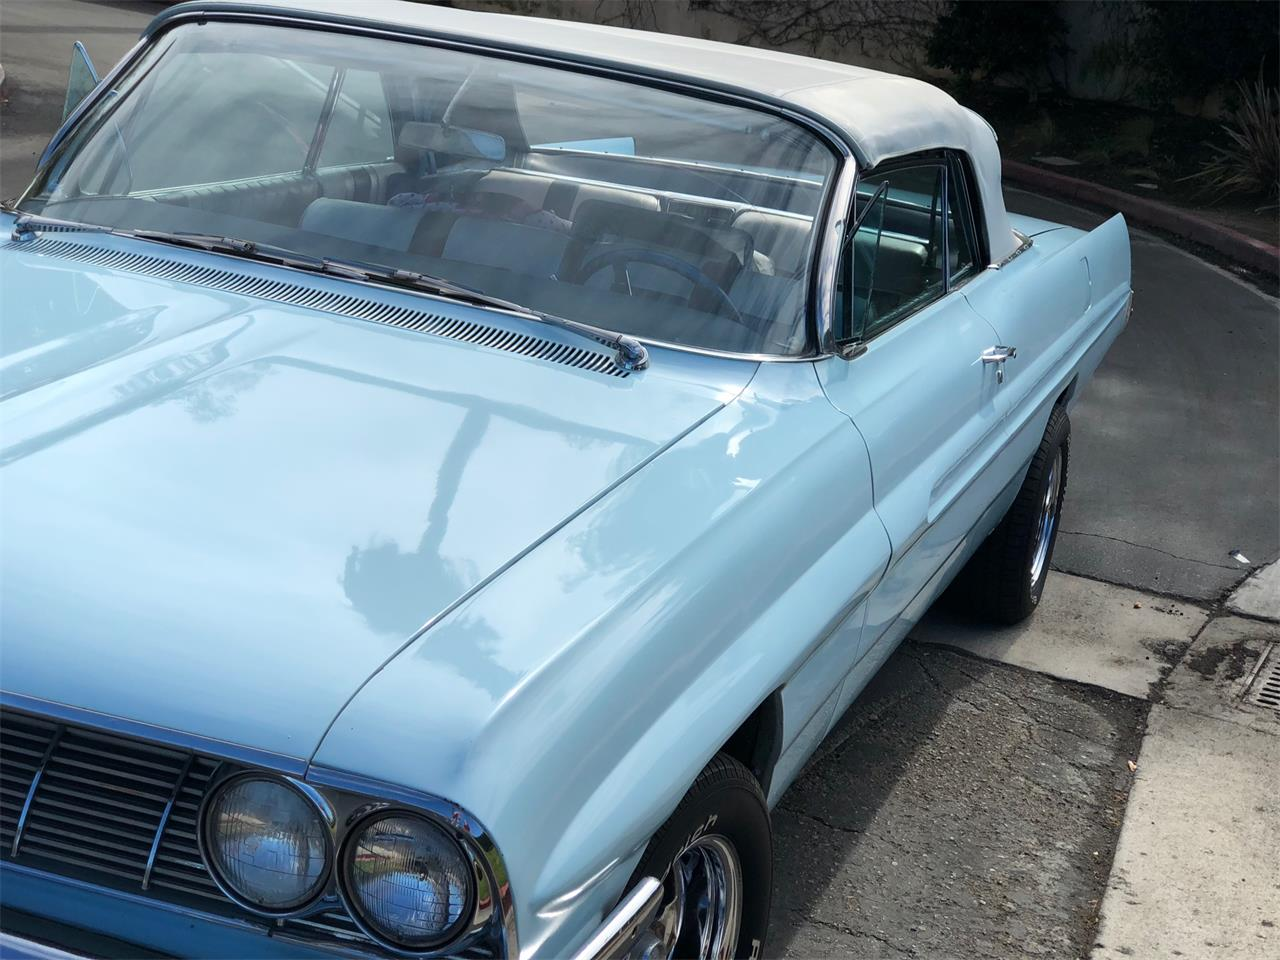 Large Picture of '61 Pontiac Bonneville located in Cot de Caza California Offered by a Private Seller - ASQZ